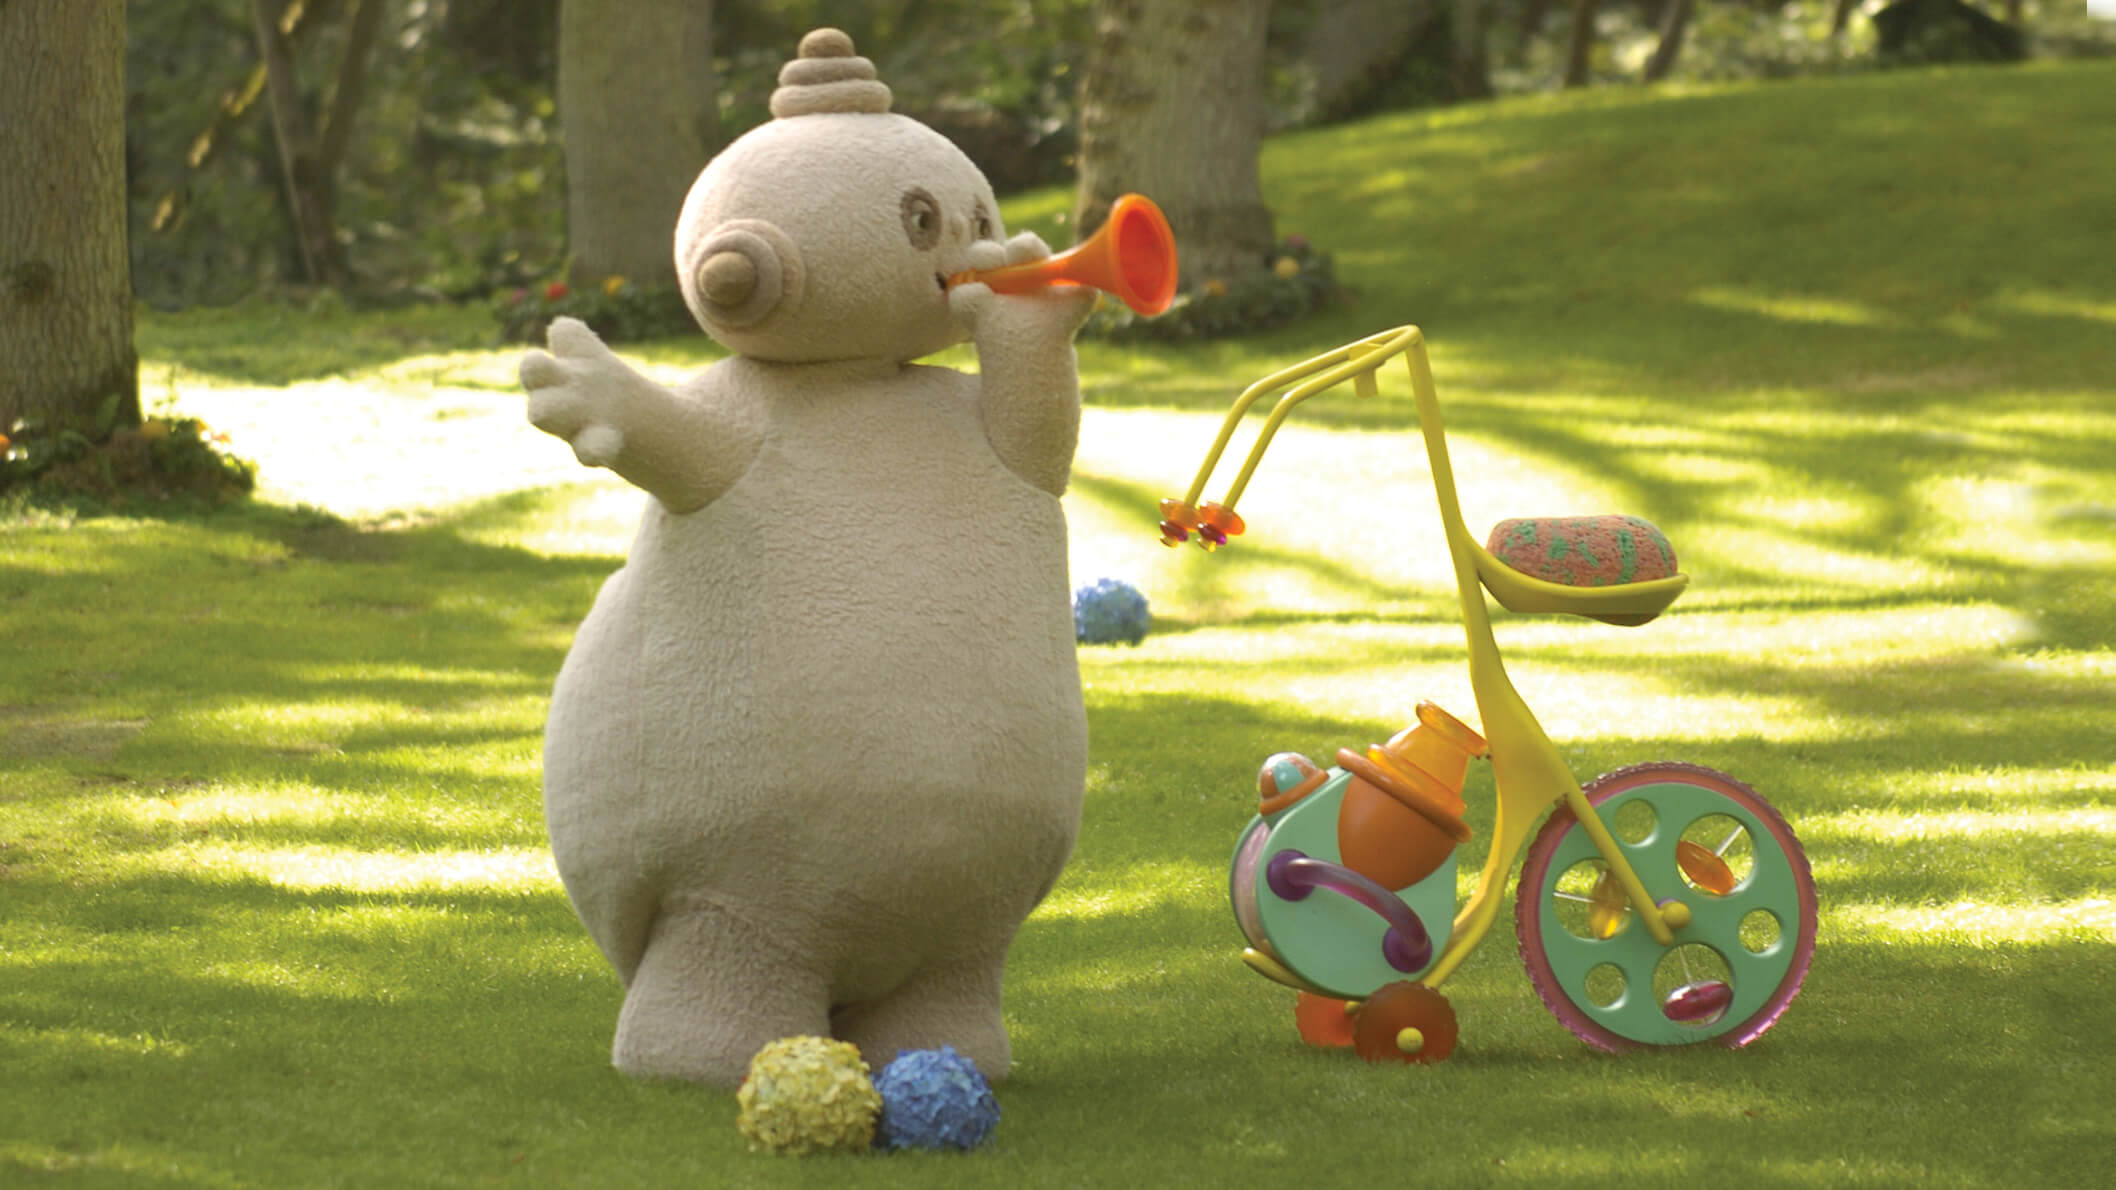 A round, beige character standing in a park, beside a tricycle and blowing through an orange horn.